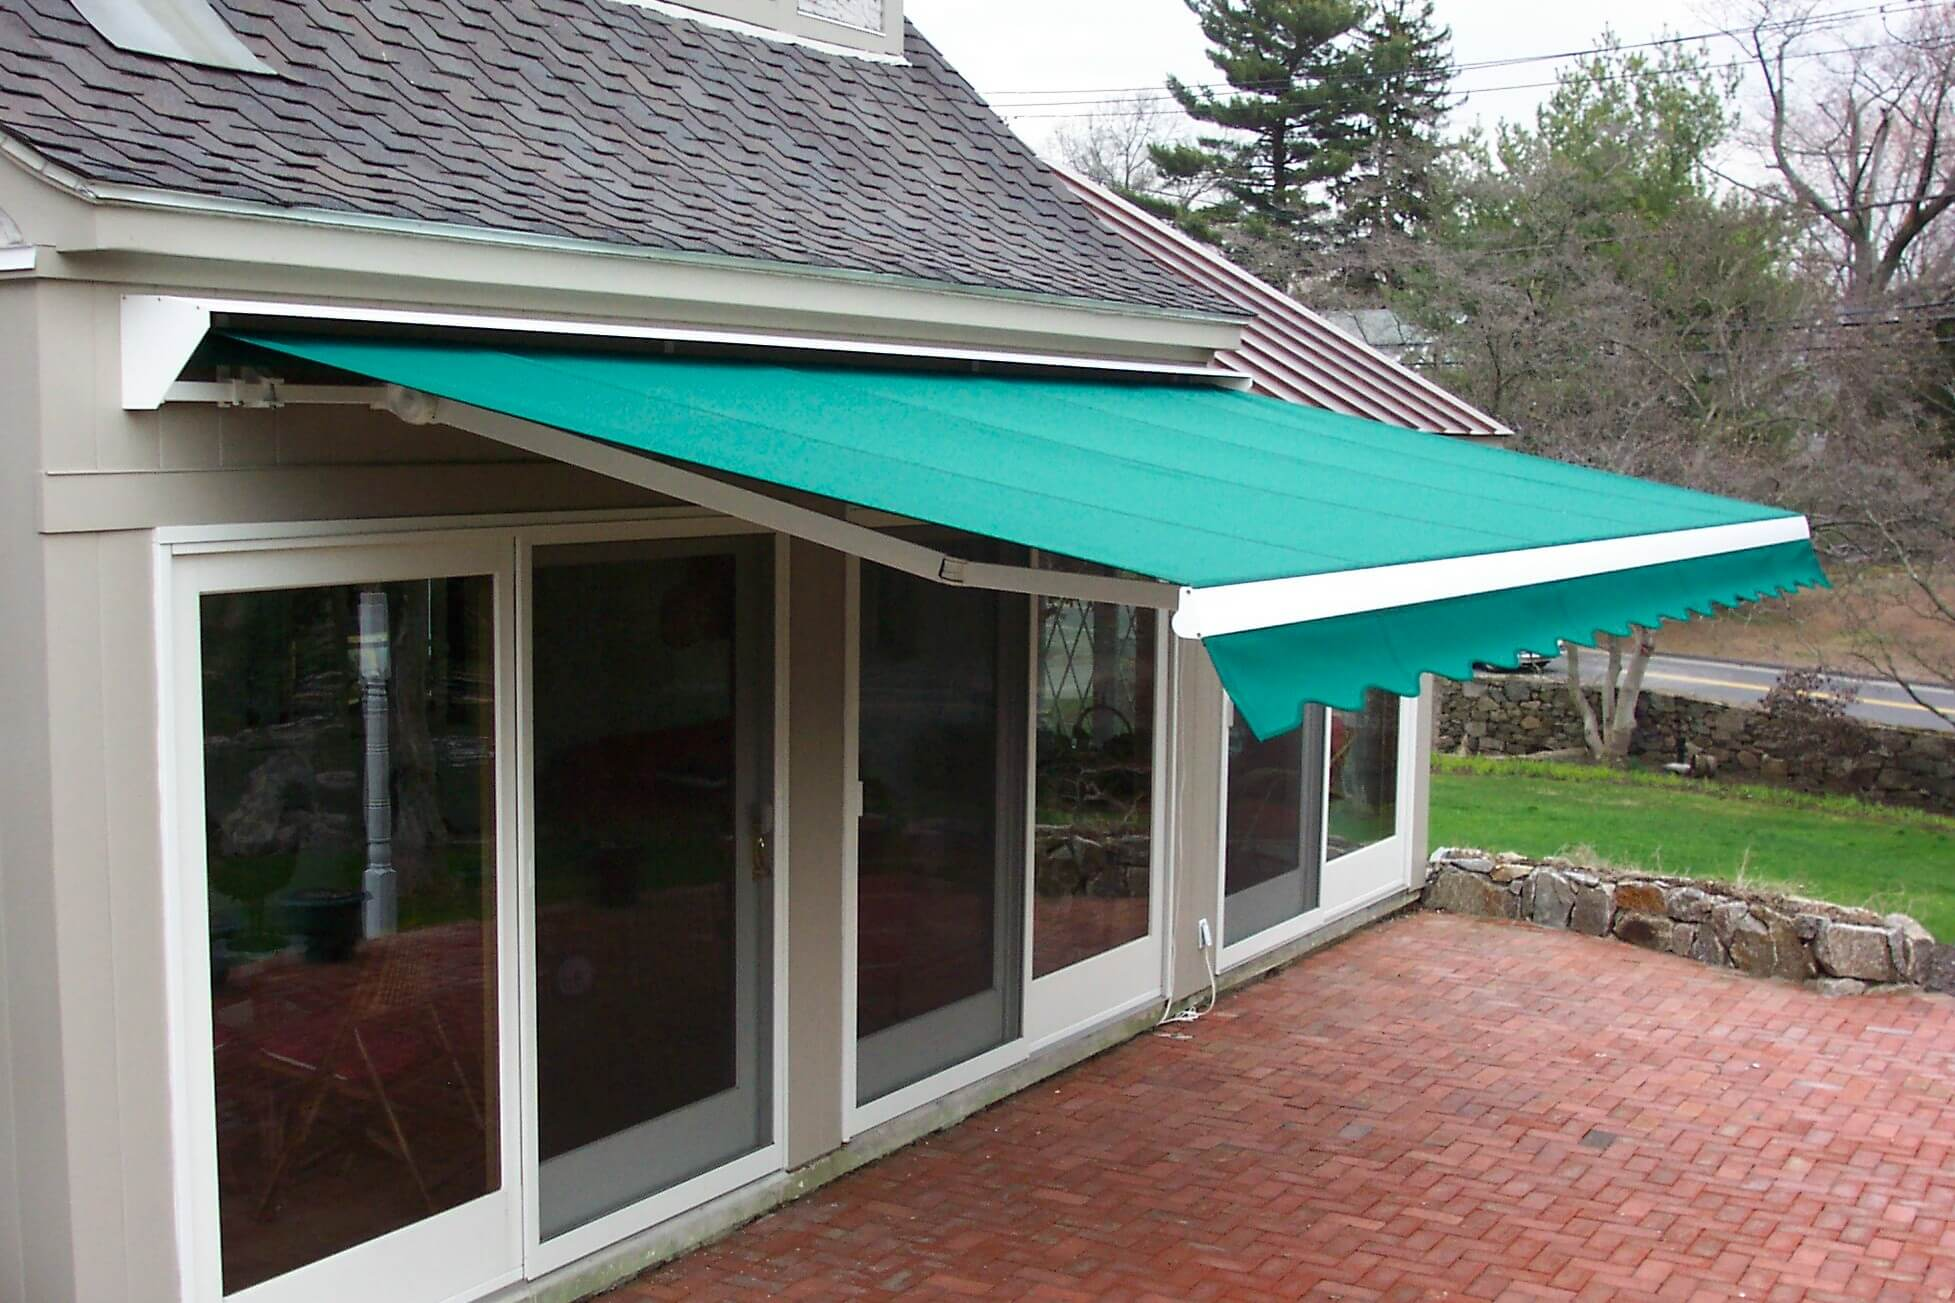 DIY Retractable Awnings: Easy to Install Awnings & Parts